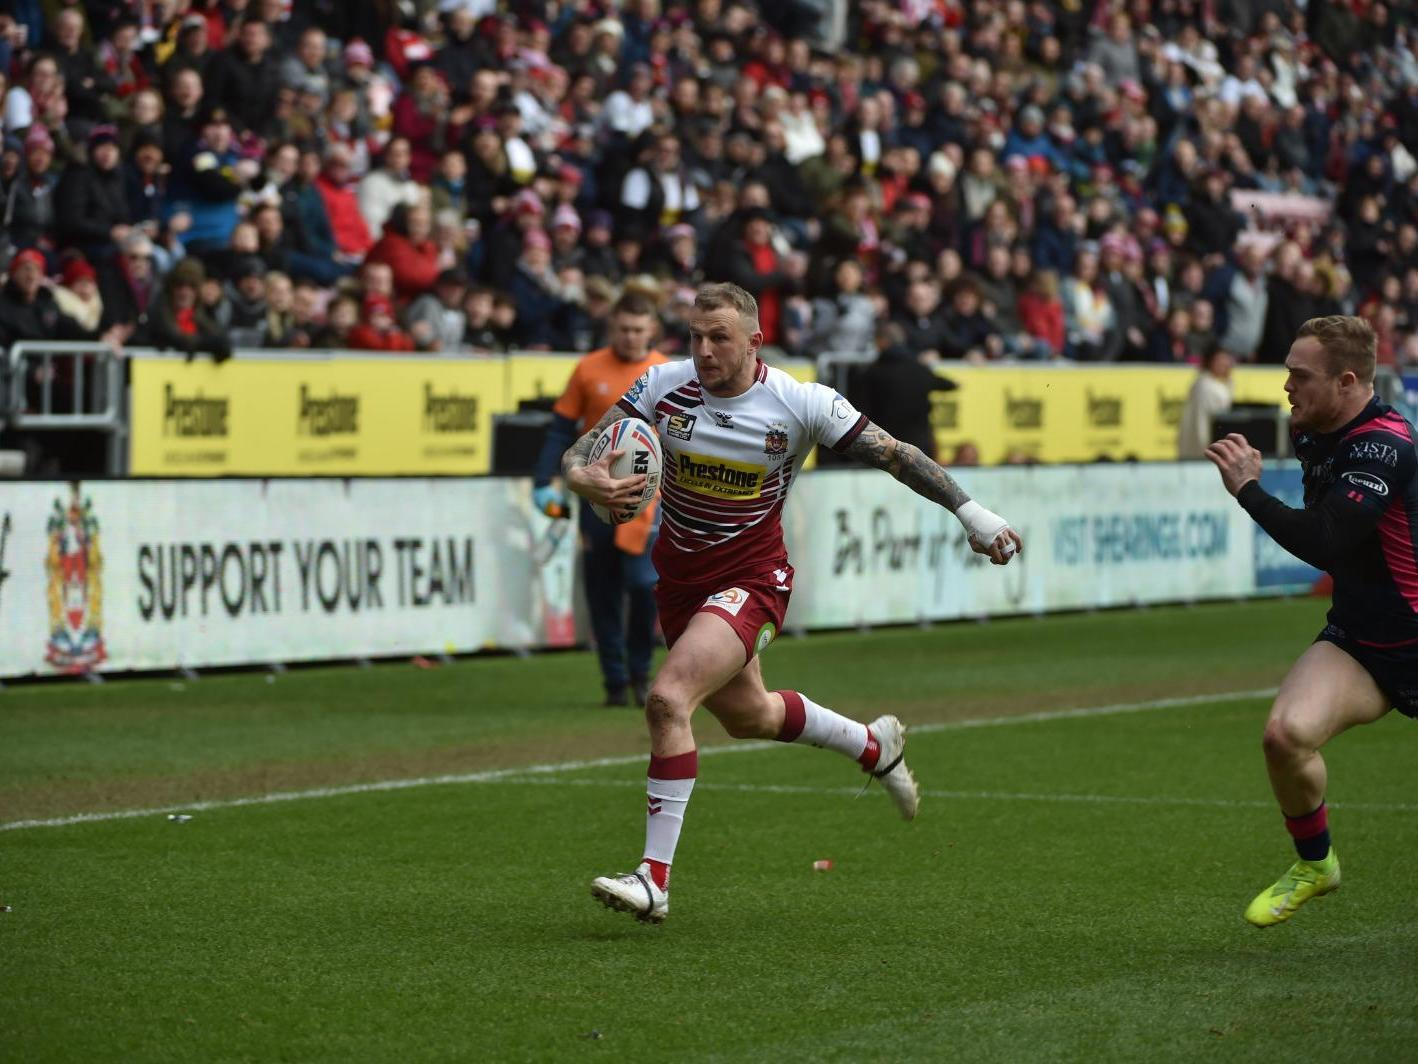 Wigan Warriors 26 Hull FC 12: Five things we learned